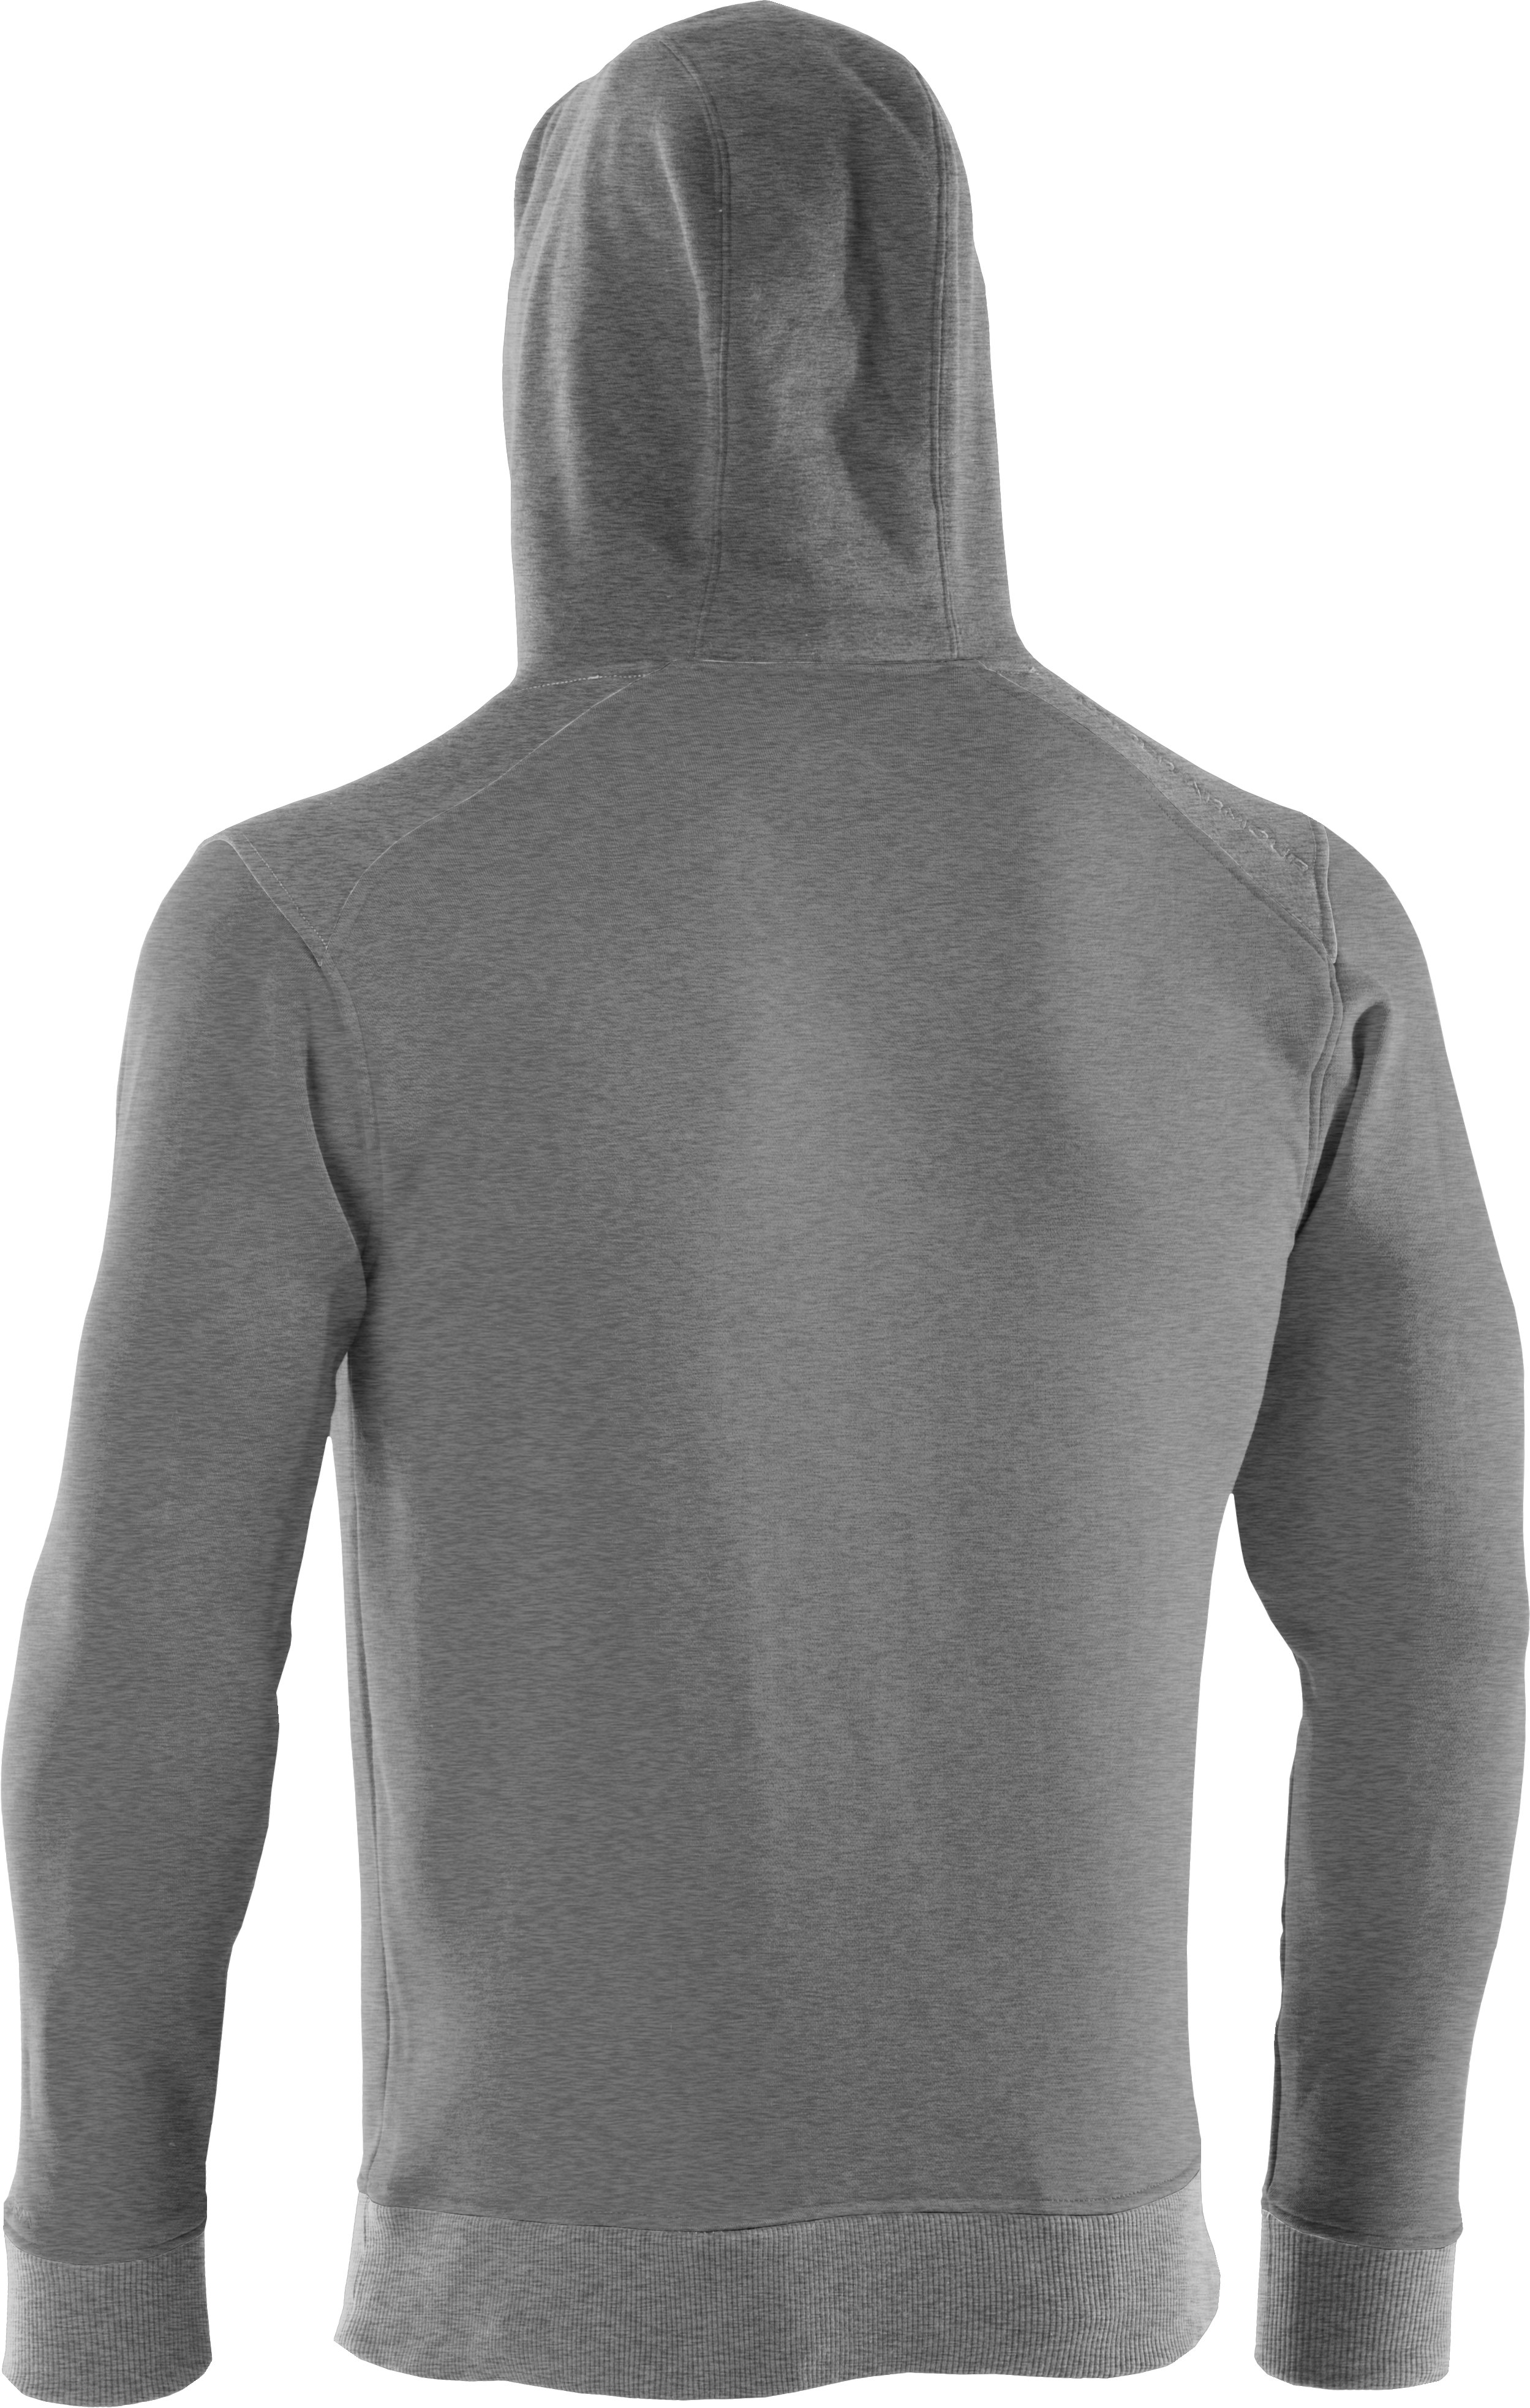 Men's Charged Cotton® Storm Hoodie, True Gray Heather